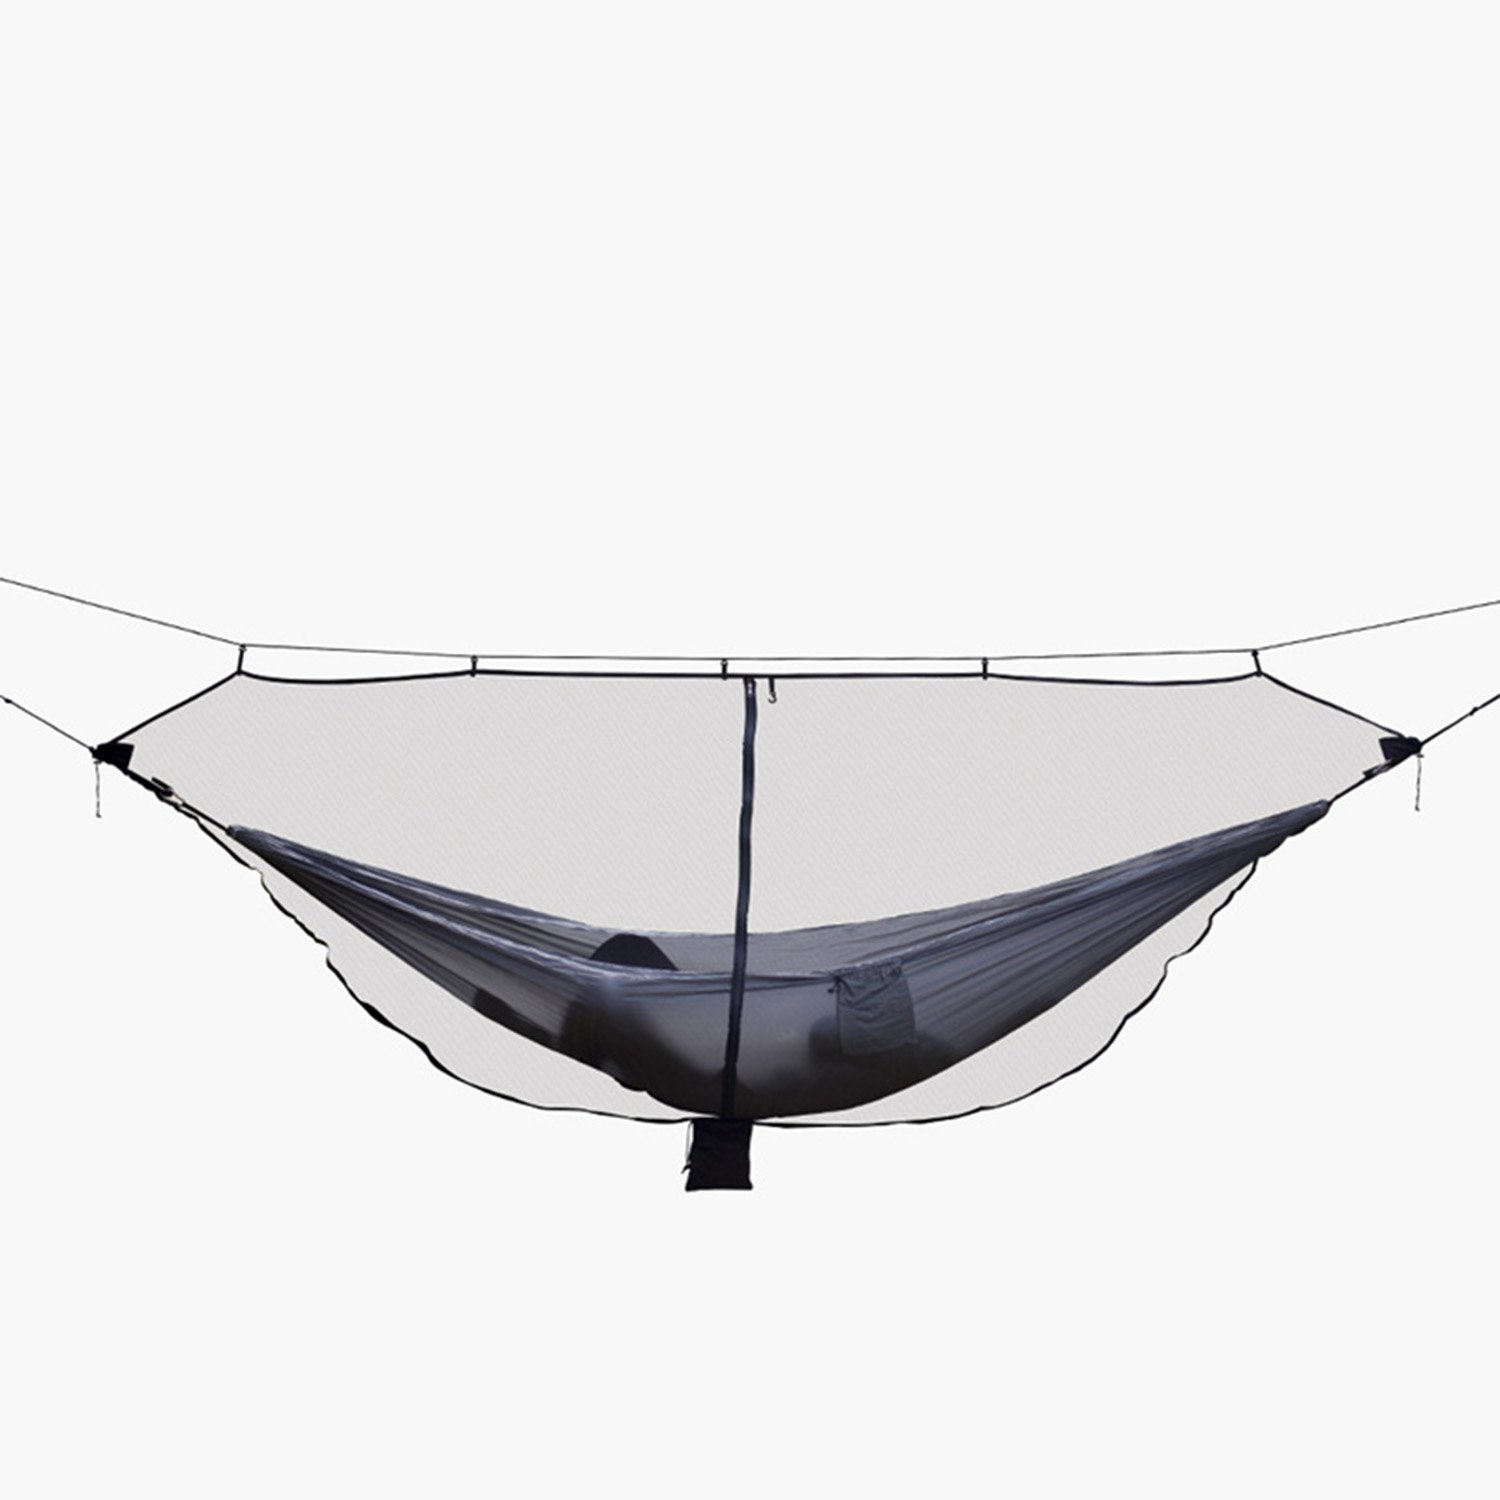 Ultralight Portable Hammock Mosquito Net For Outdoor Nylon Material Anti-mosquito Nets With Super Size To Enjoy High Reputation At Home And Abroad Sleeping Bags Sports & Entertainment